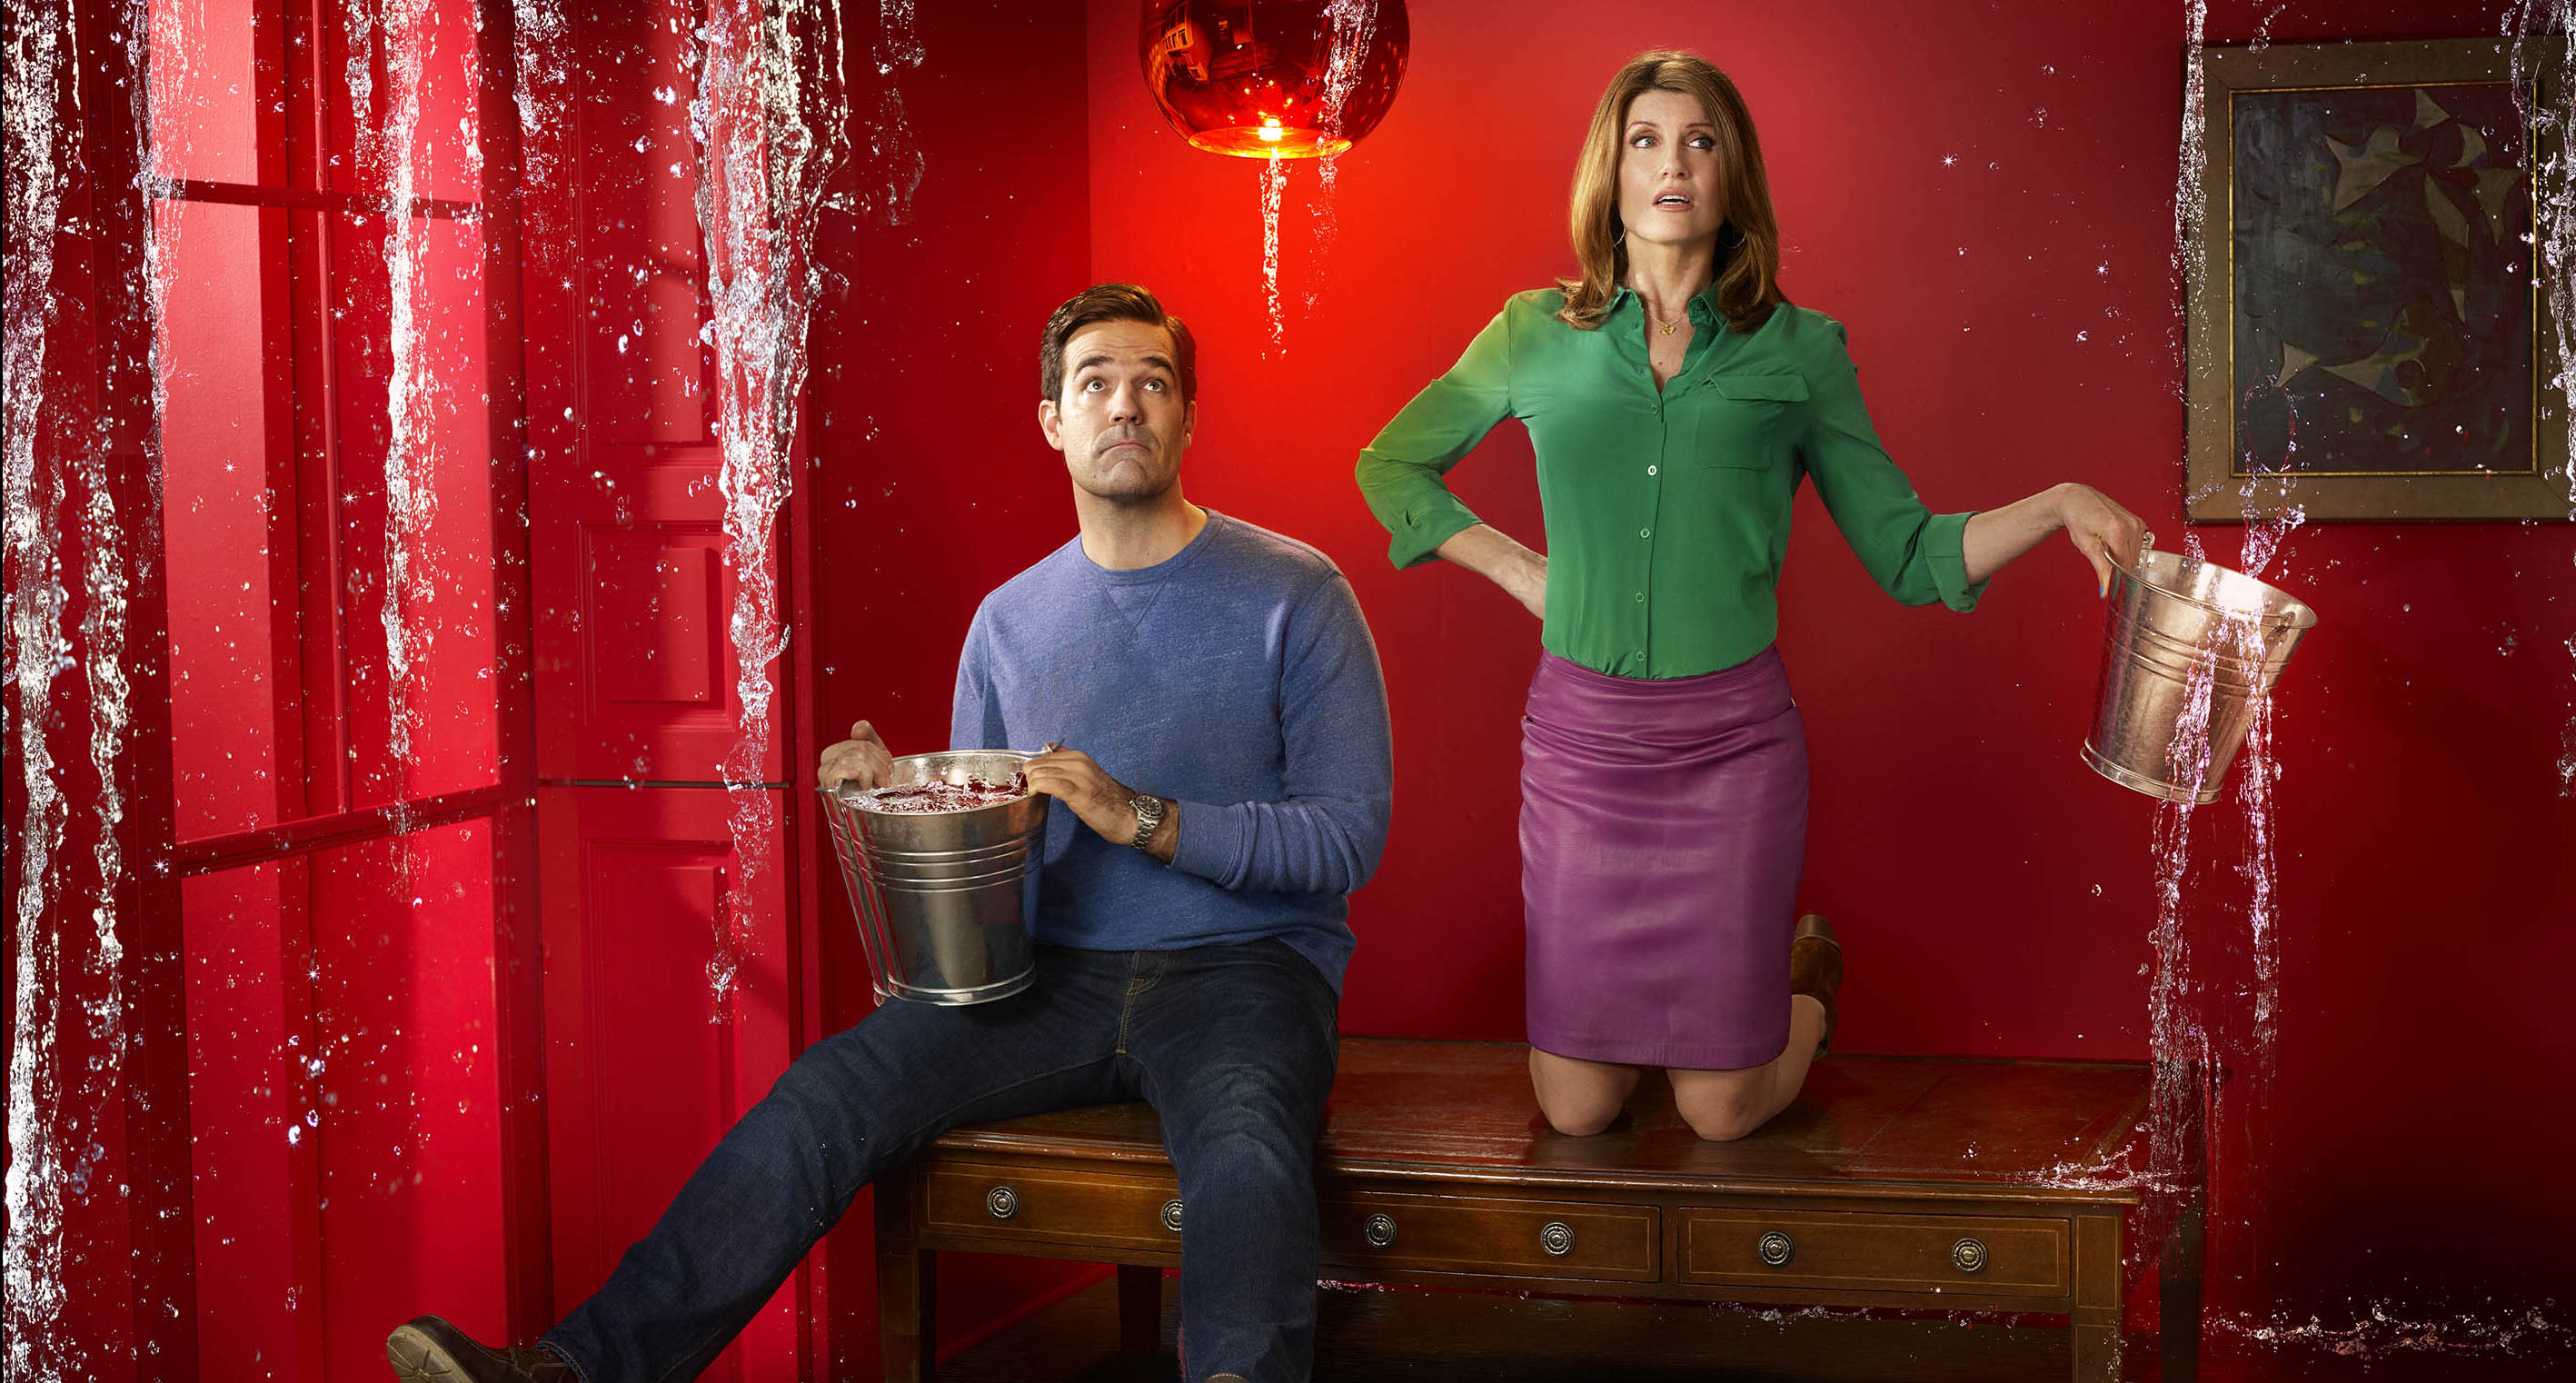 UK Comedy 'Catastrophe' To Launch Stateside On Amazon Prime – Video